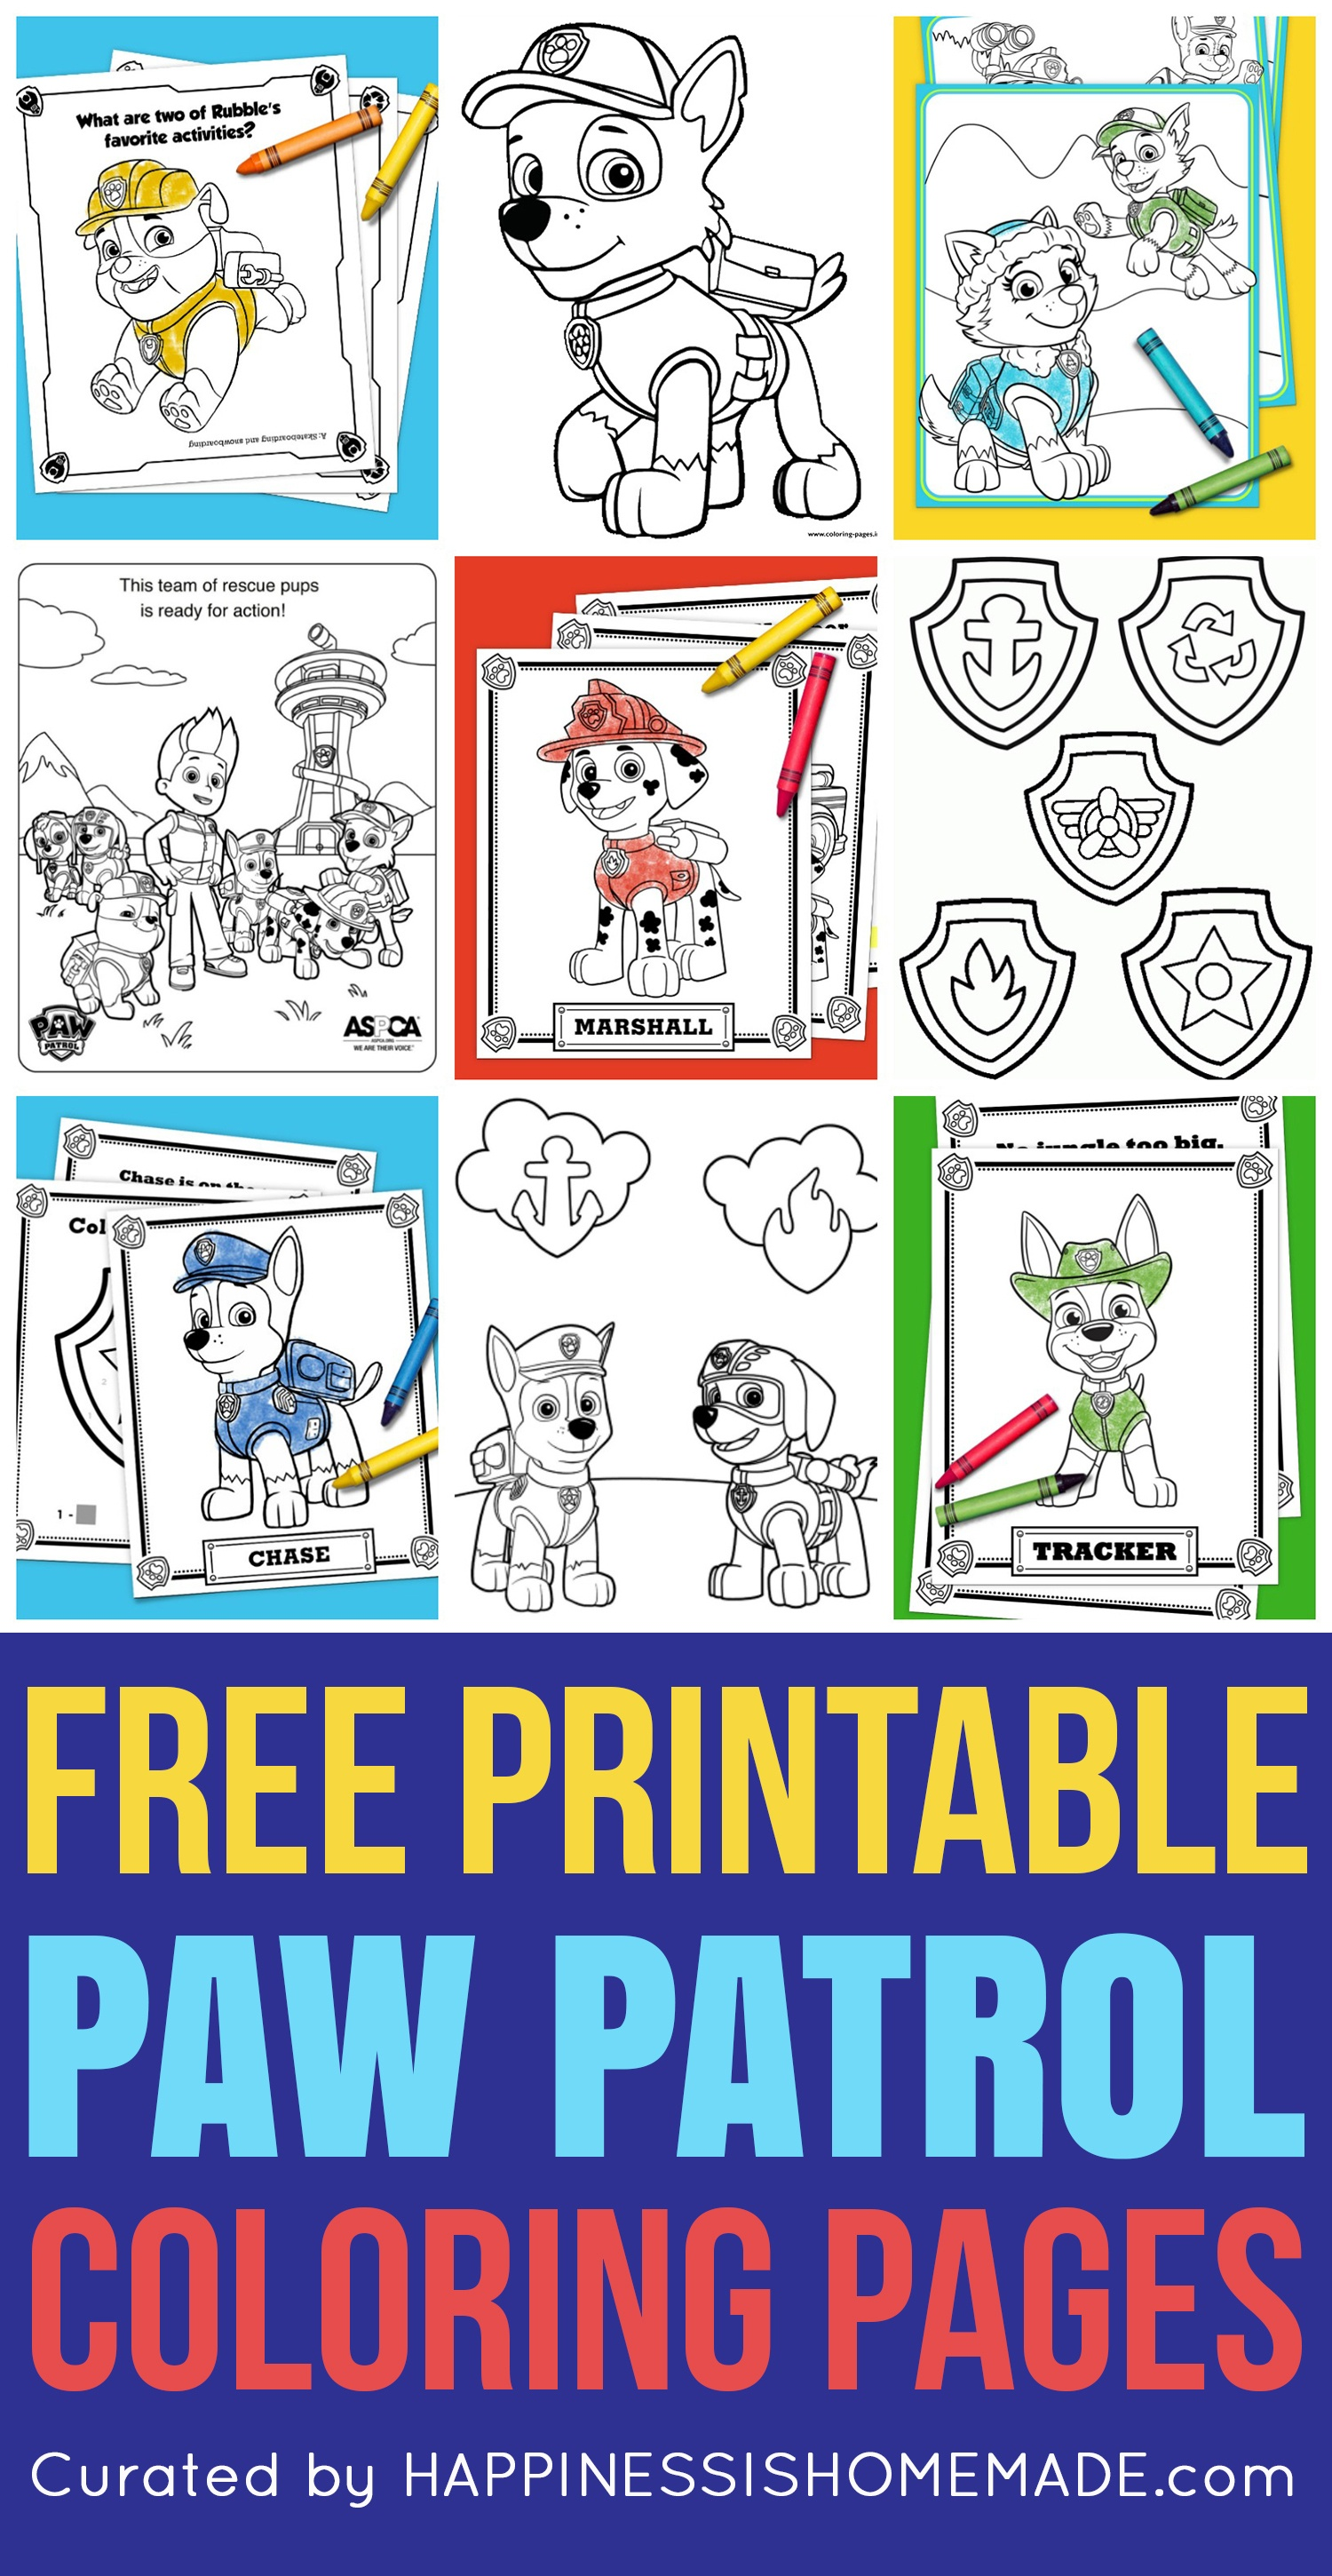 Free Paw Patrol Coloring Pages - Happiness Is Homemade - Free Paw Patrol Printables